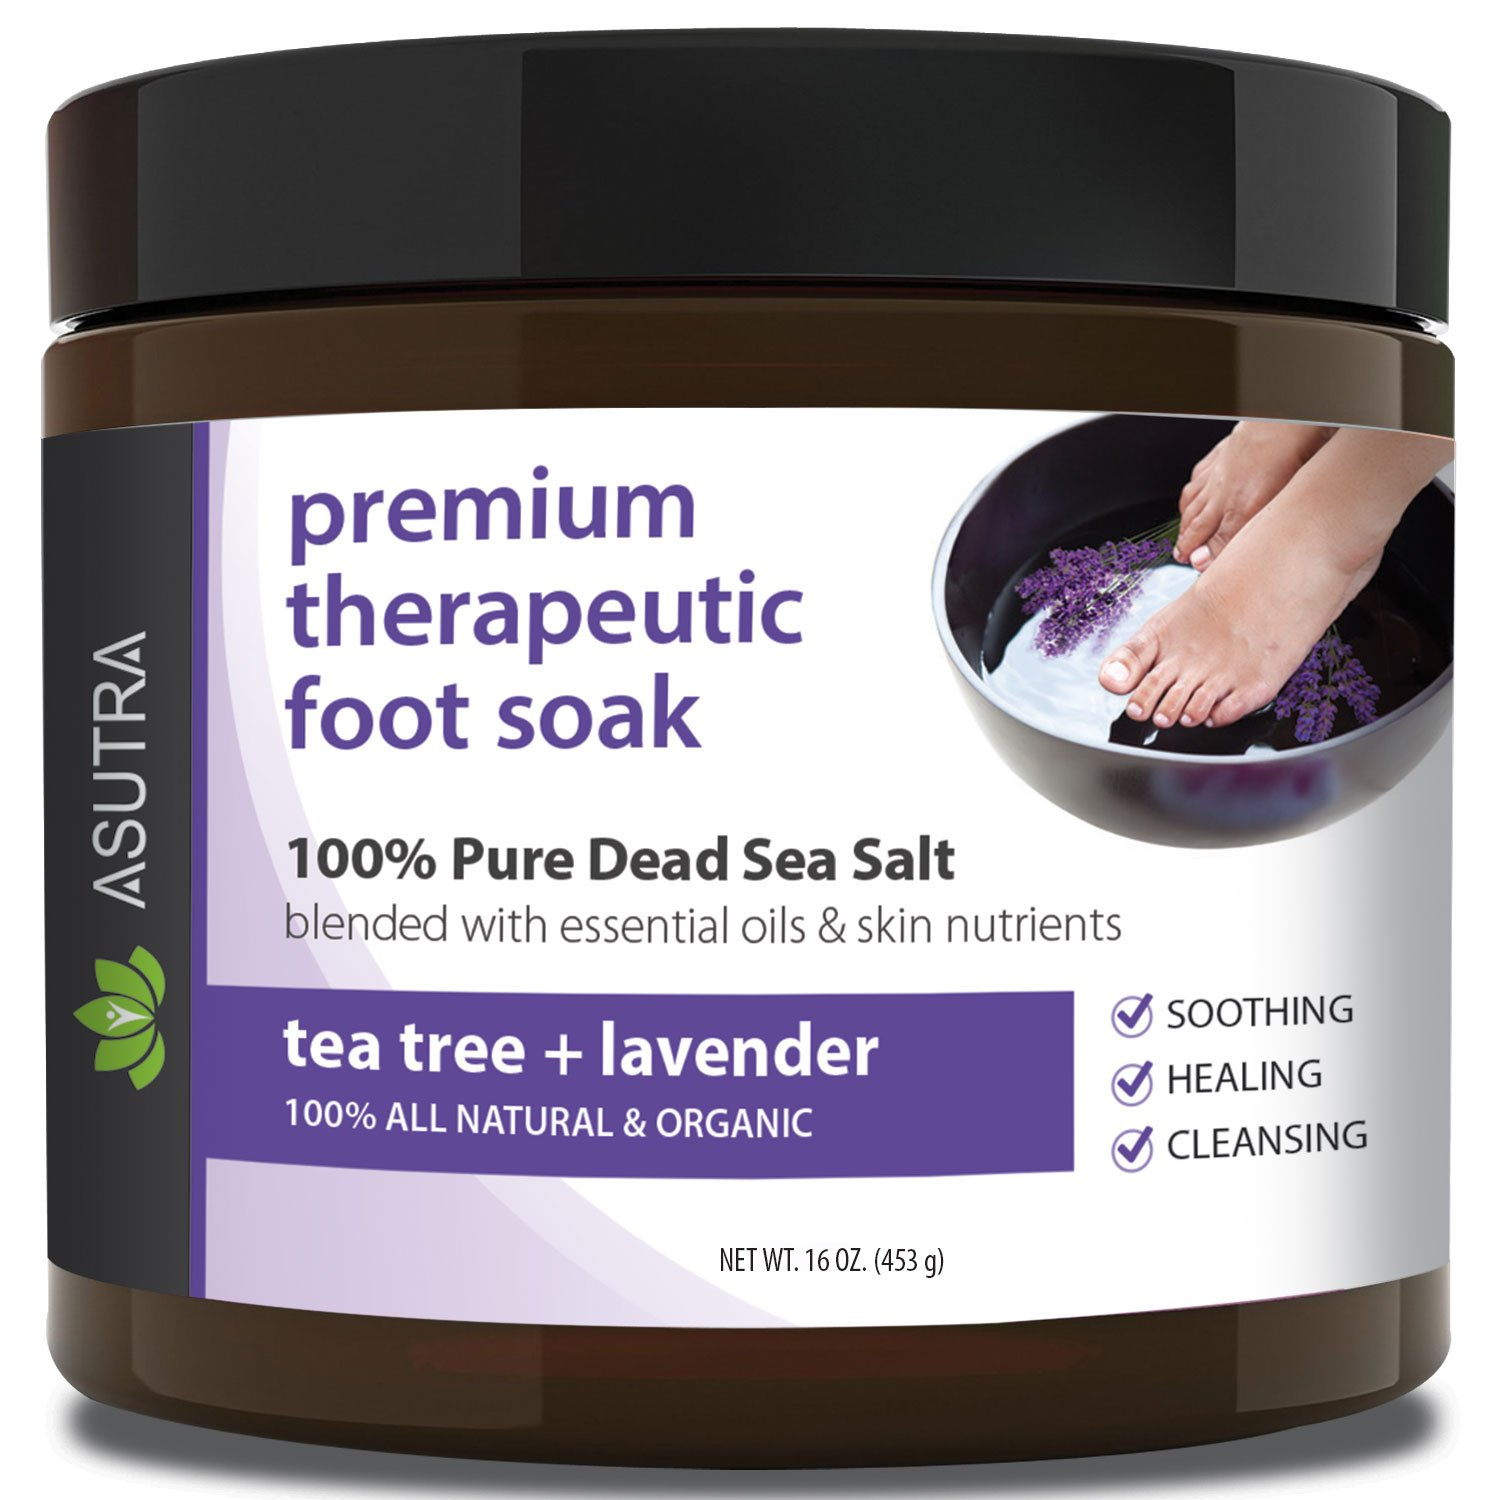 "Premium Therapeutic Foot Soak - ""TEA TREE + LAVENDER"" + Free Pedicure Pumice Stone - 100% Pure Dead Sea Salt With Skin Healing Nutrients & Organic Essential Oils - Large 16oz"